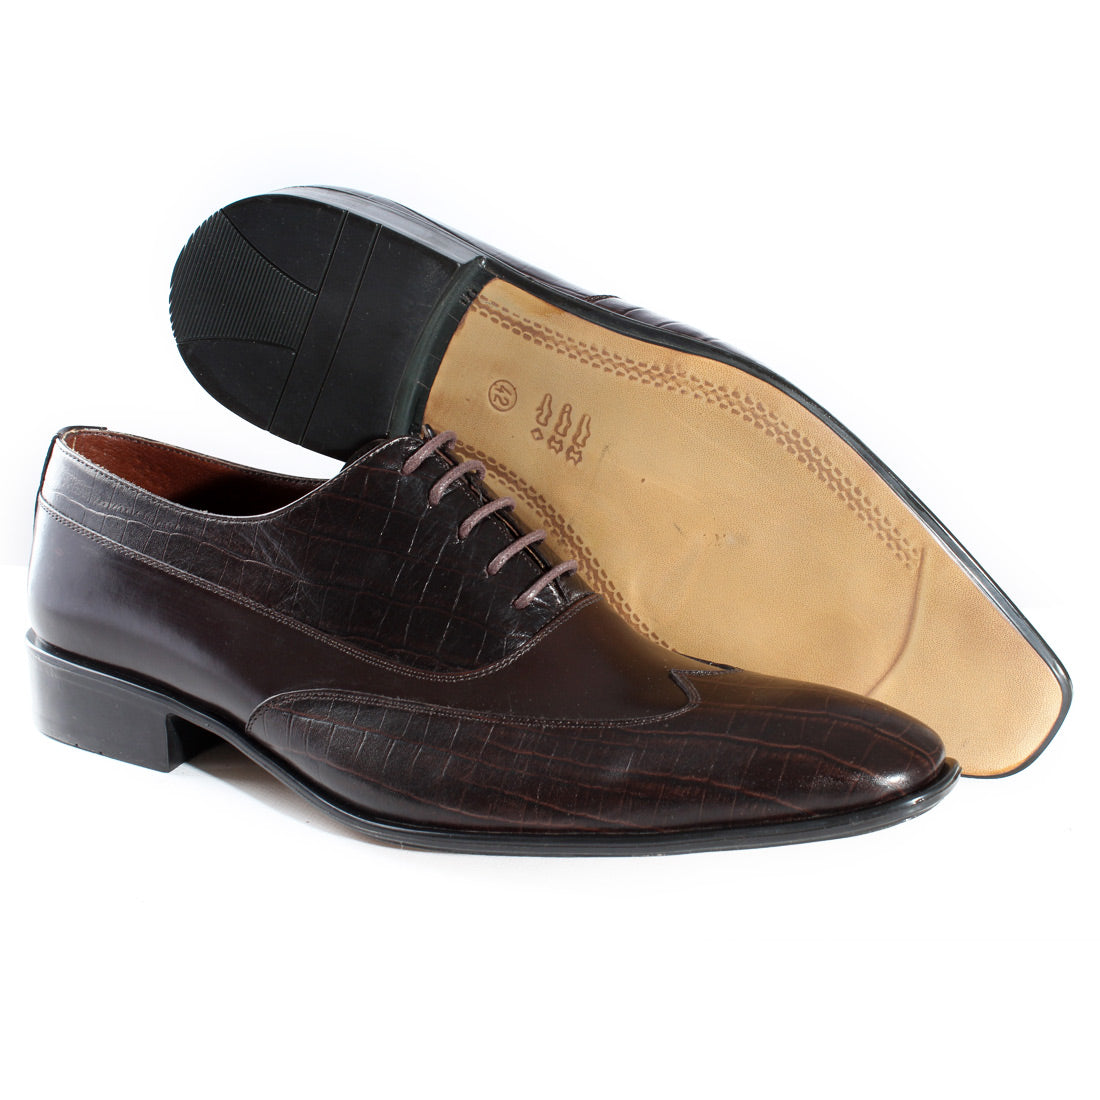 RUSTIC MEN FORMAL SHOES -3487-10